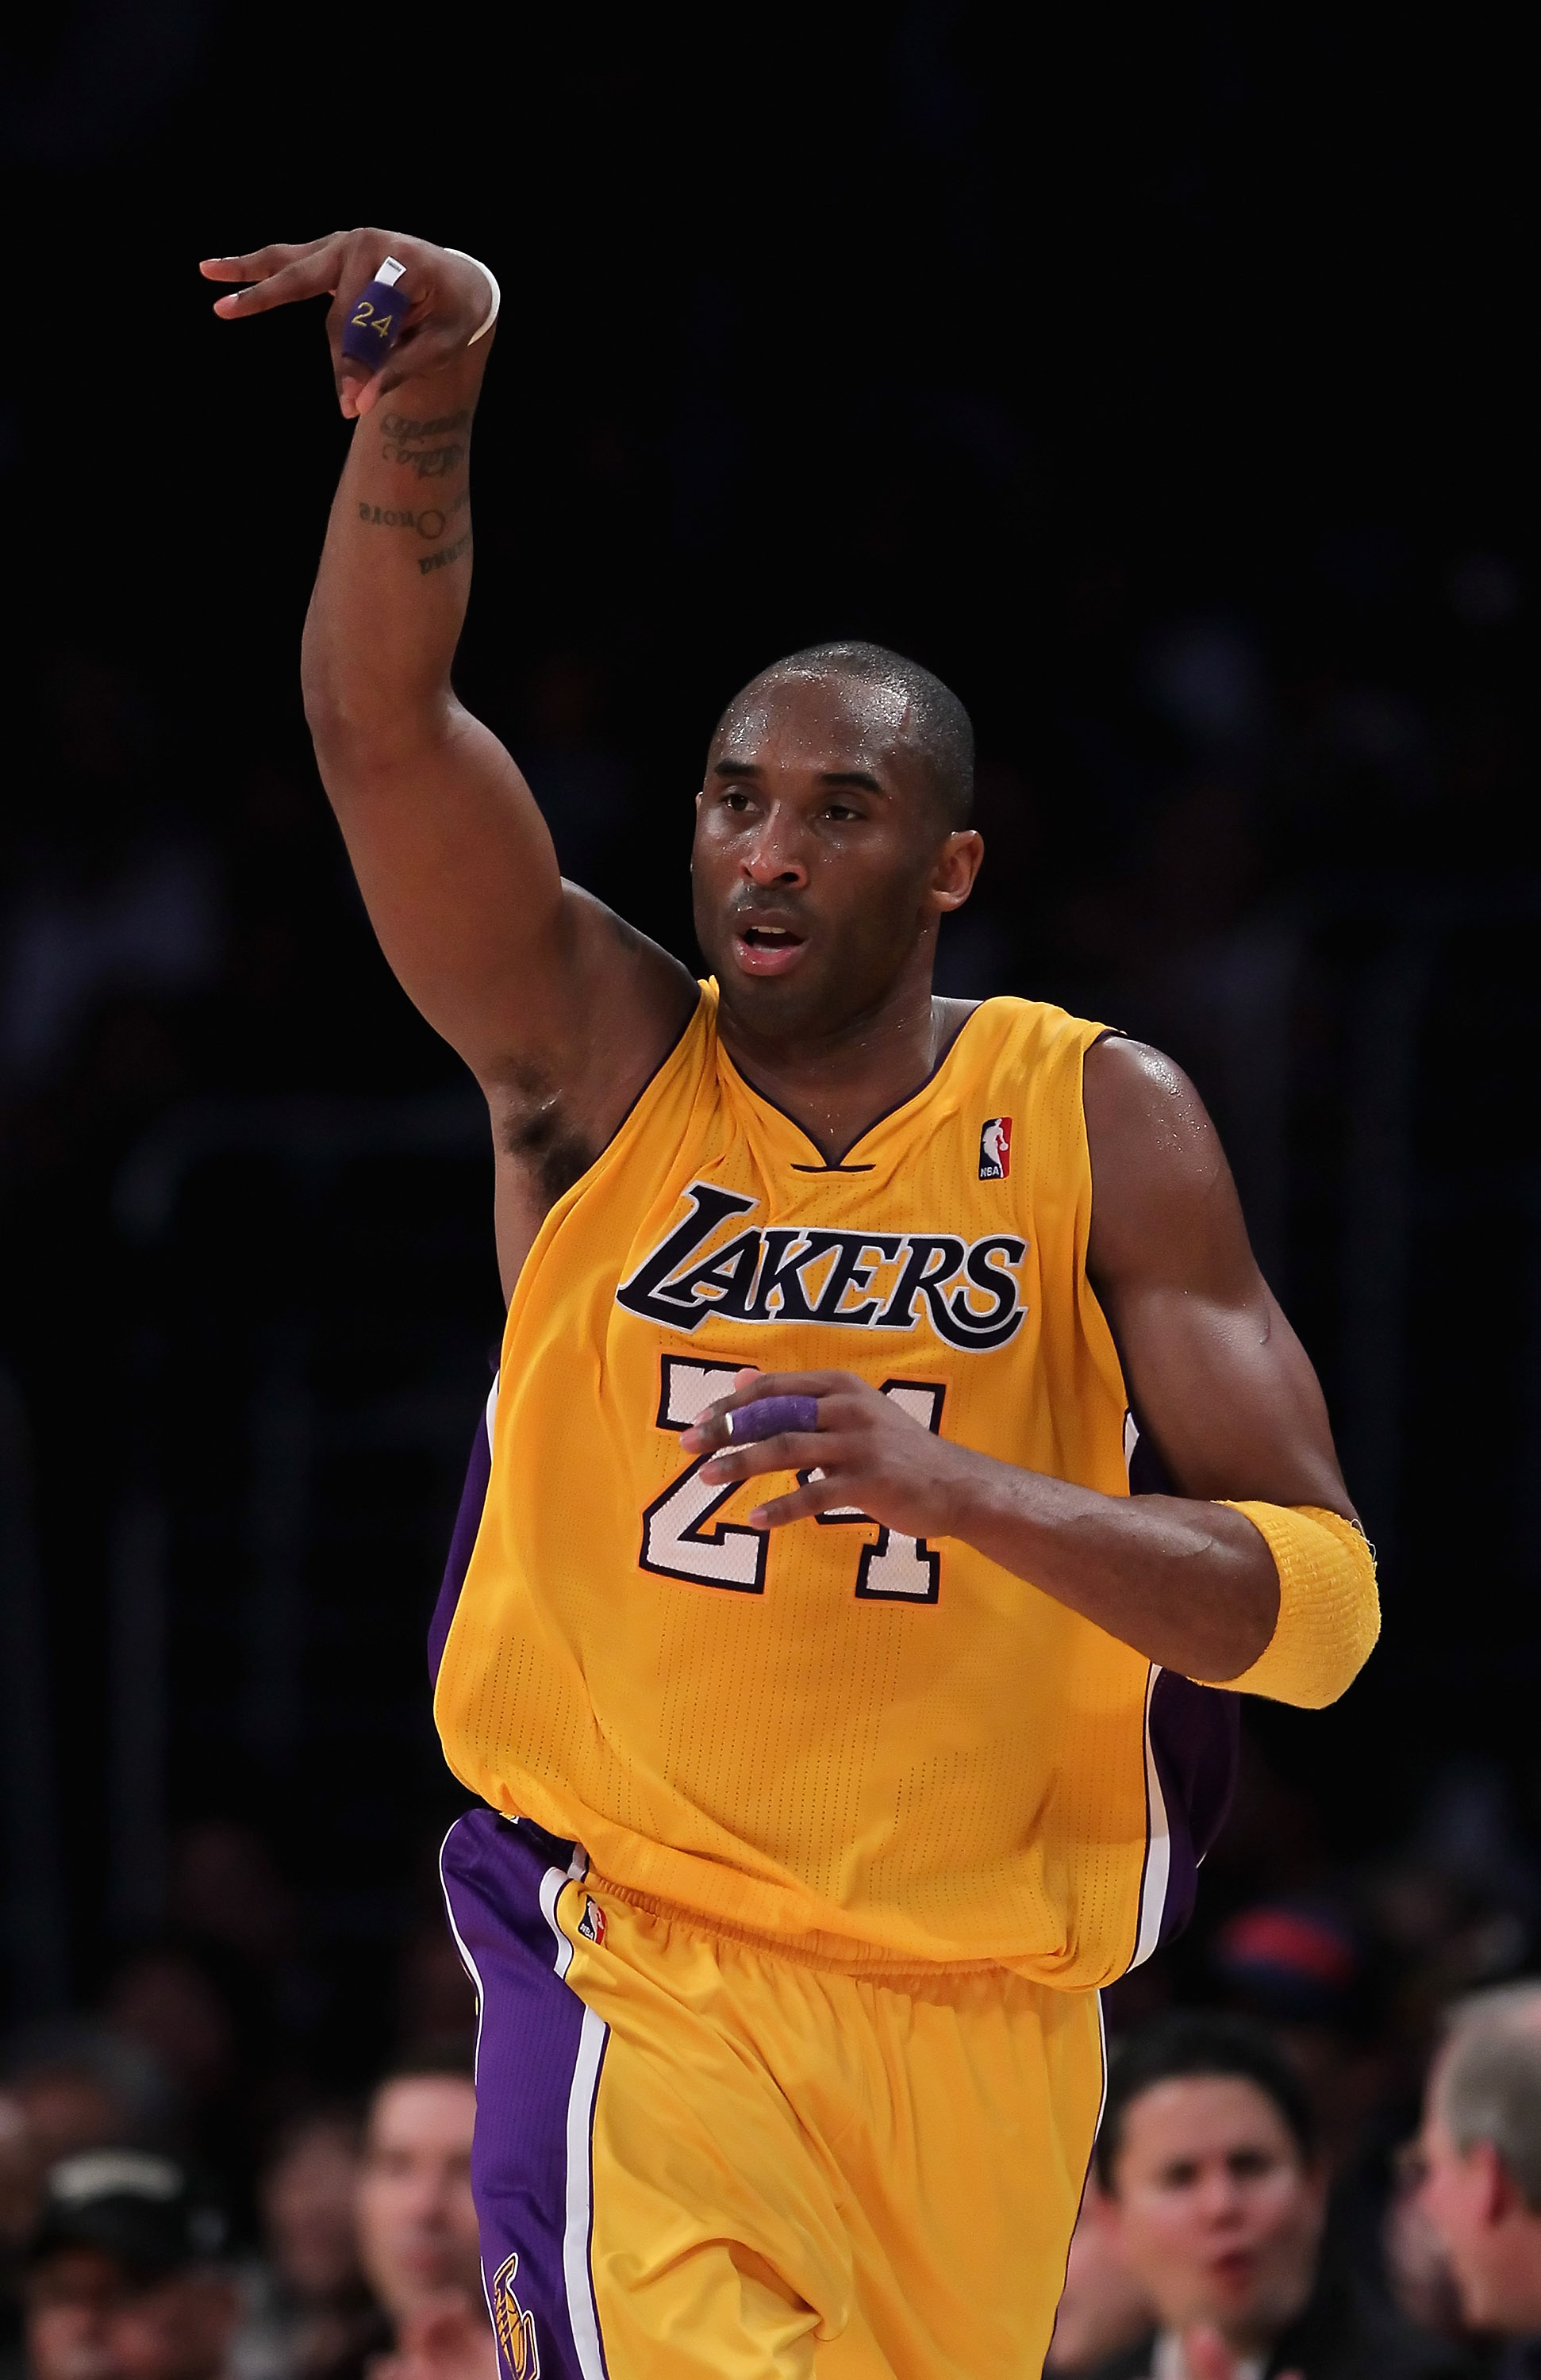 LOS ANGELES, CA - FEBRUARY 22:  Kobe Bryant #24 of the Los Angeles Lakers celebrates after making a three-point basket in the second half against the Atlanta Hawks at Staples Center on February 22, 2011 in Los Angeles, California. The Lakers defeated the